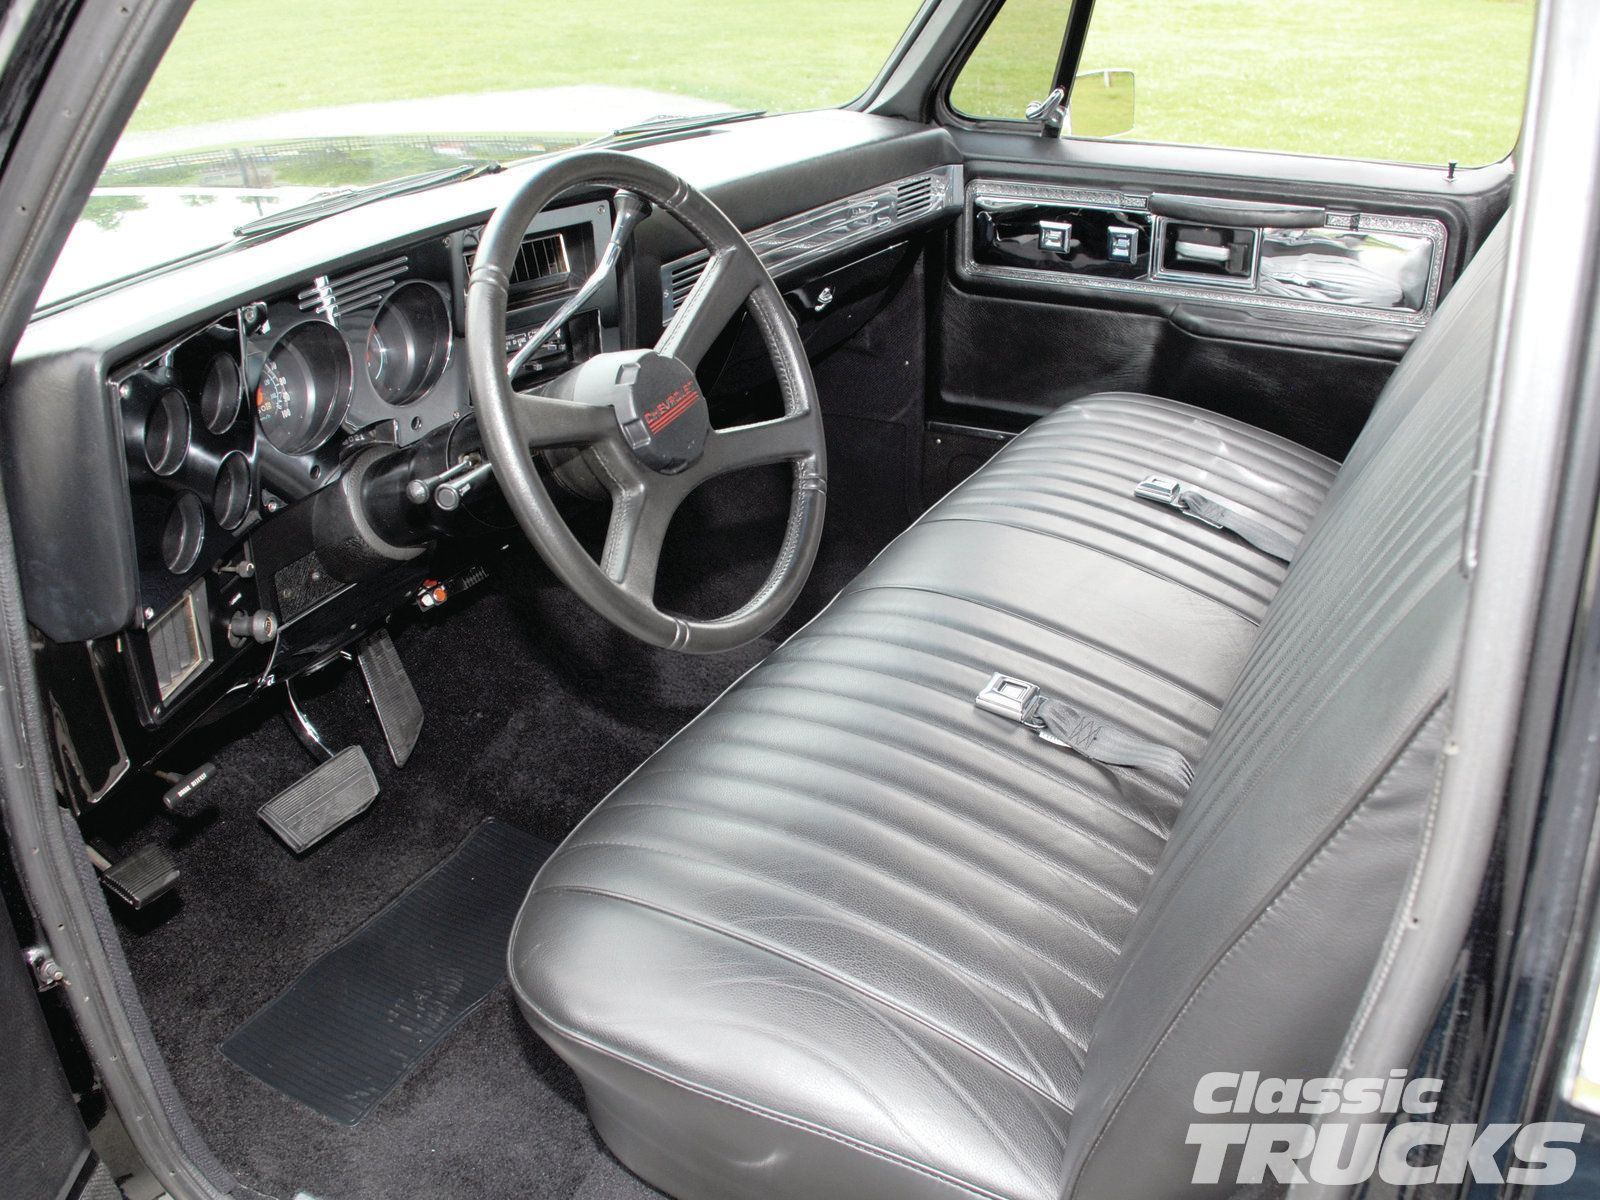 hight resolution of custom 73 87 chevy trucks previous owner didn t know how to take off the trim surround and he